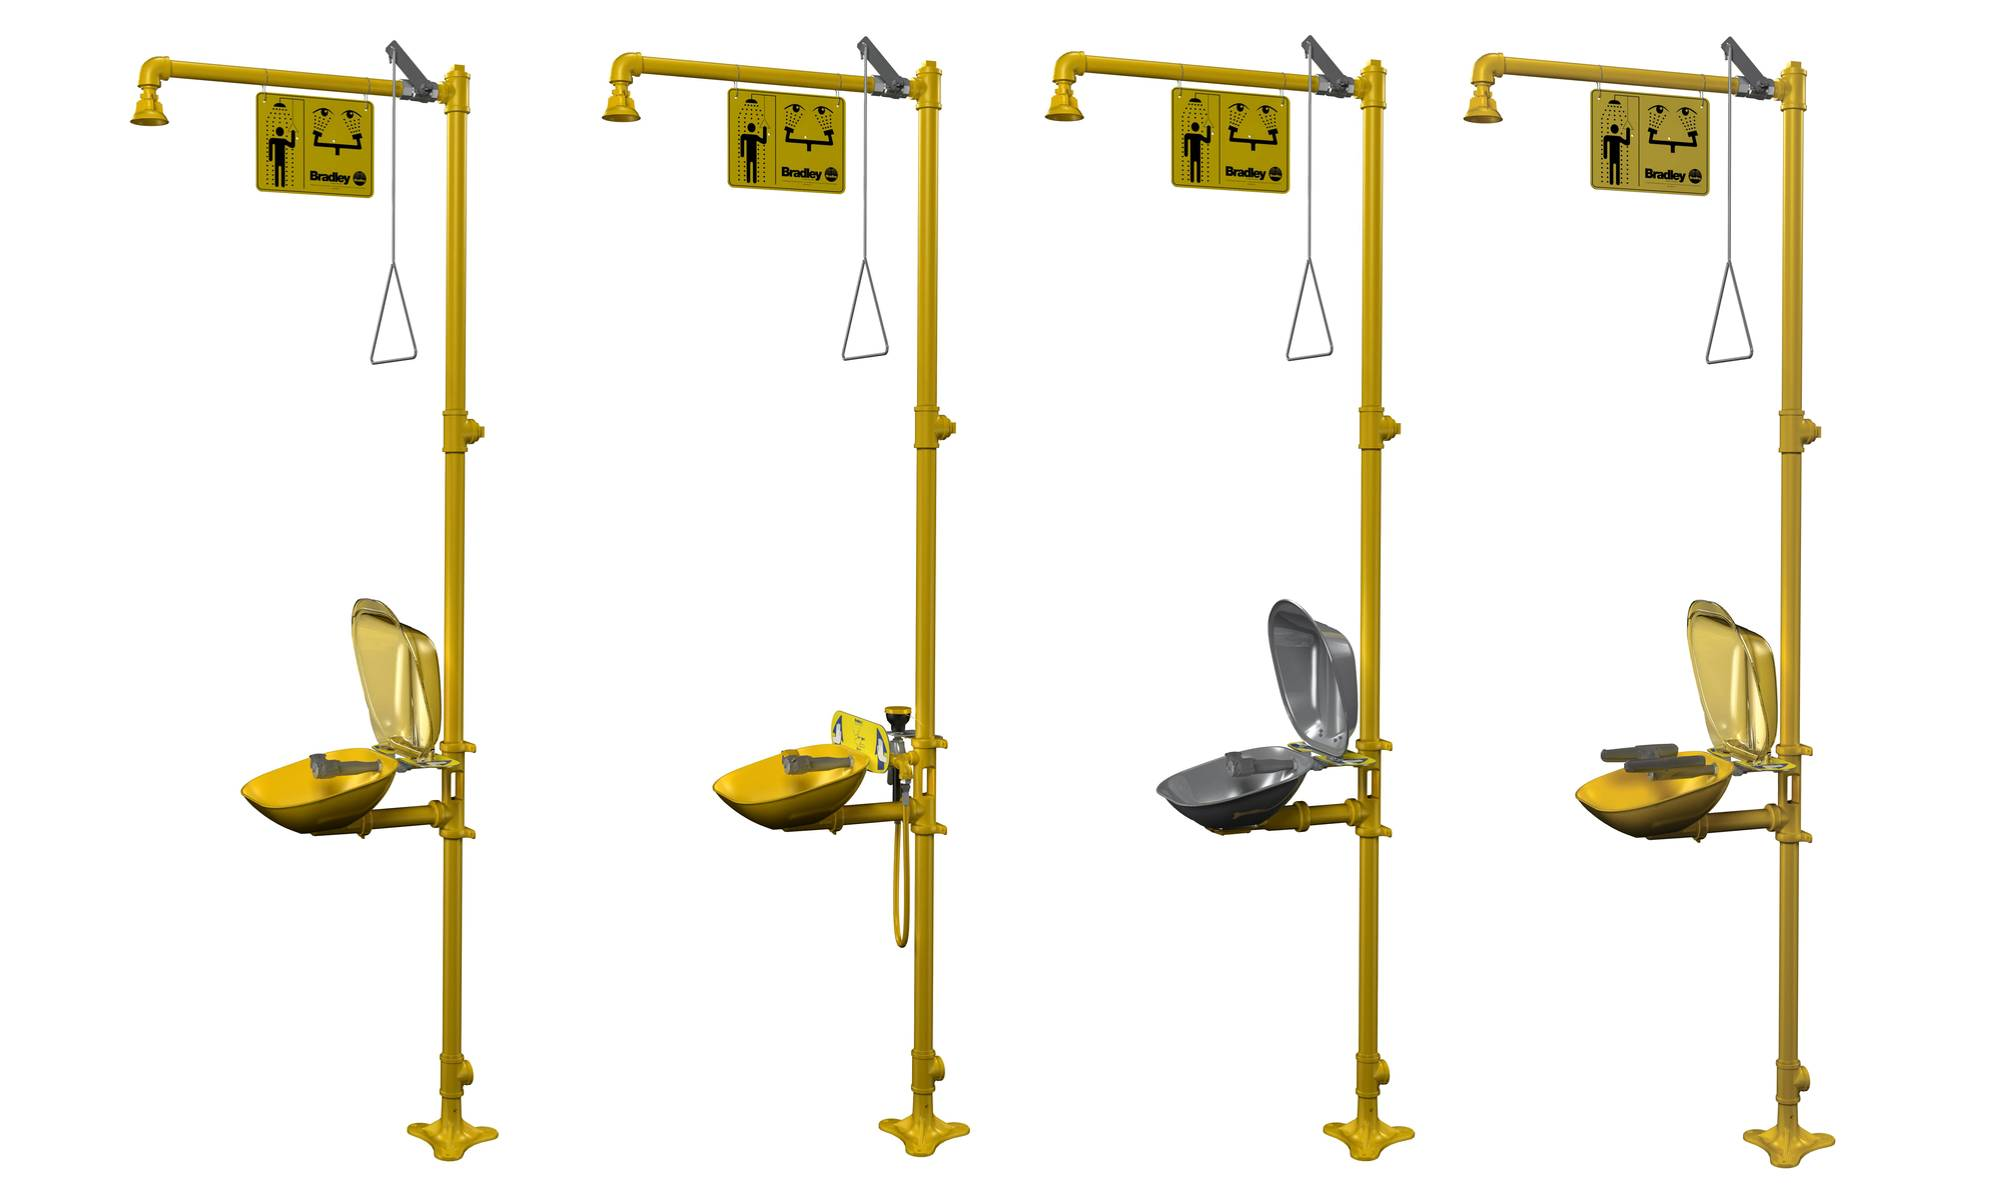 Combined emergency showers in industrial environments.